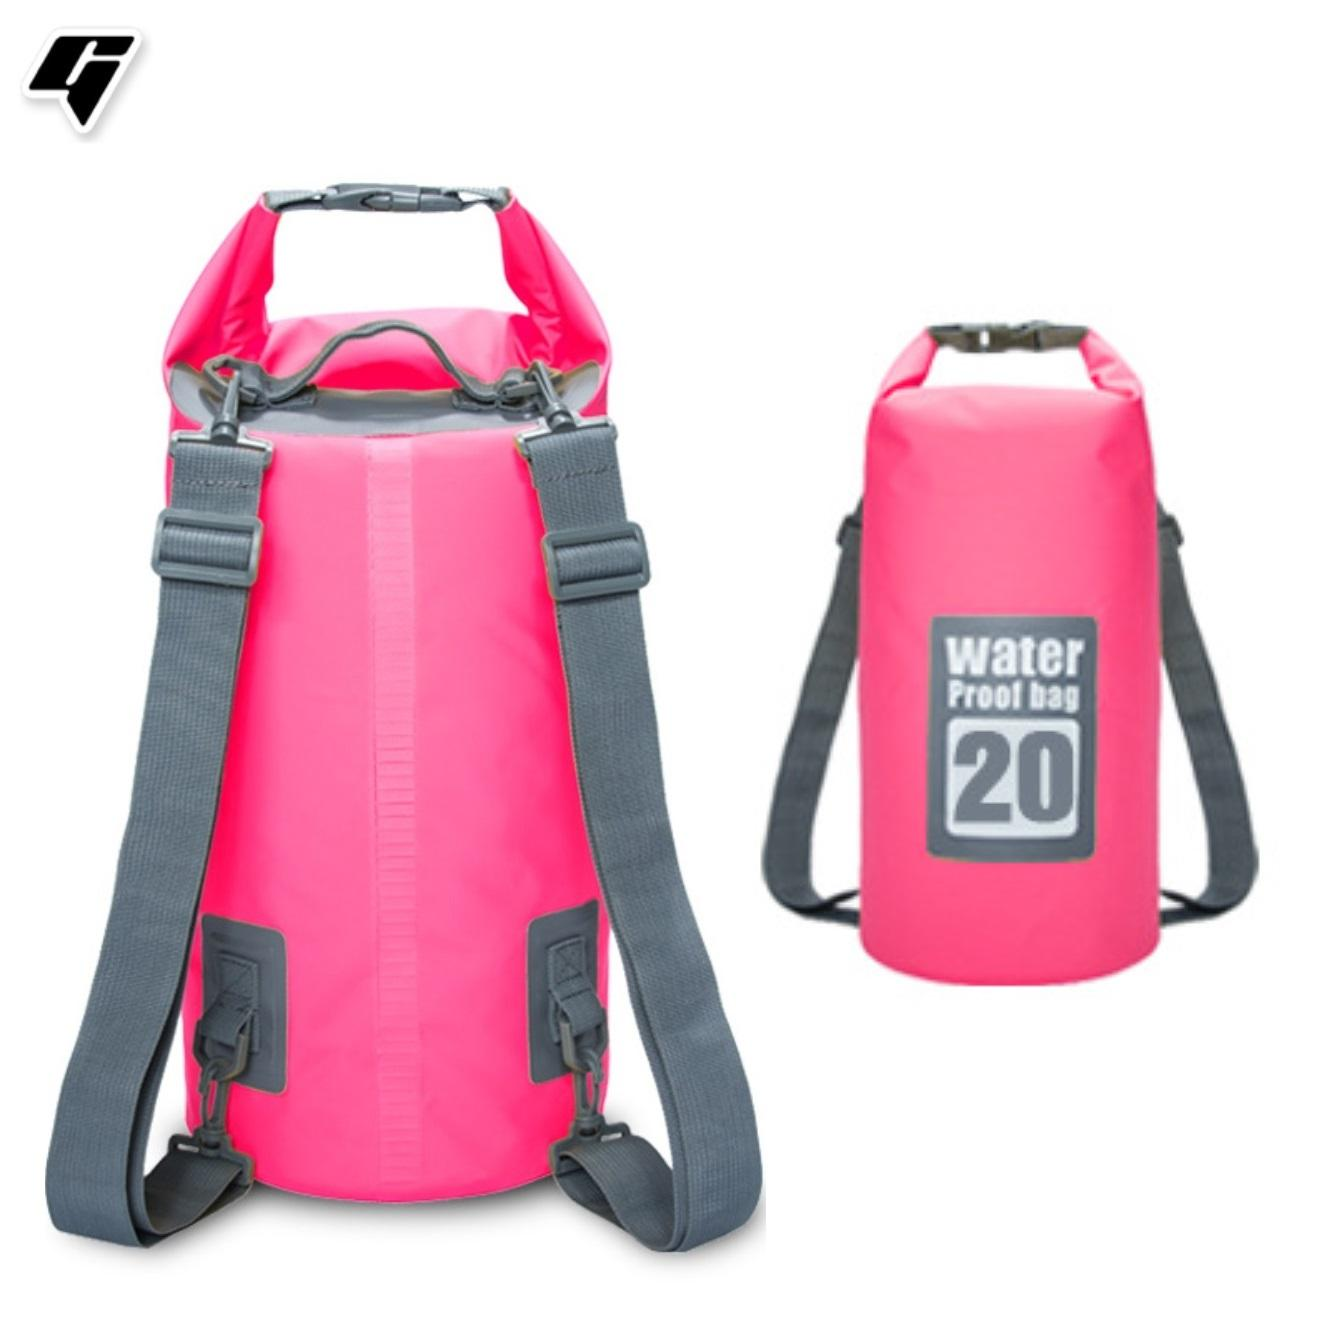 b6ecb8c18c3 Watersports Dry Bag for sale - Watersports Bags online brands ...